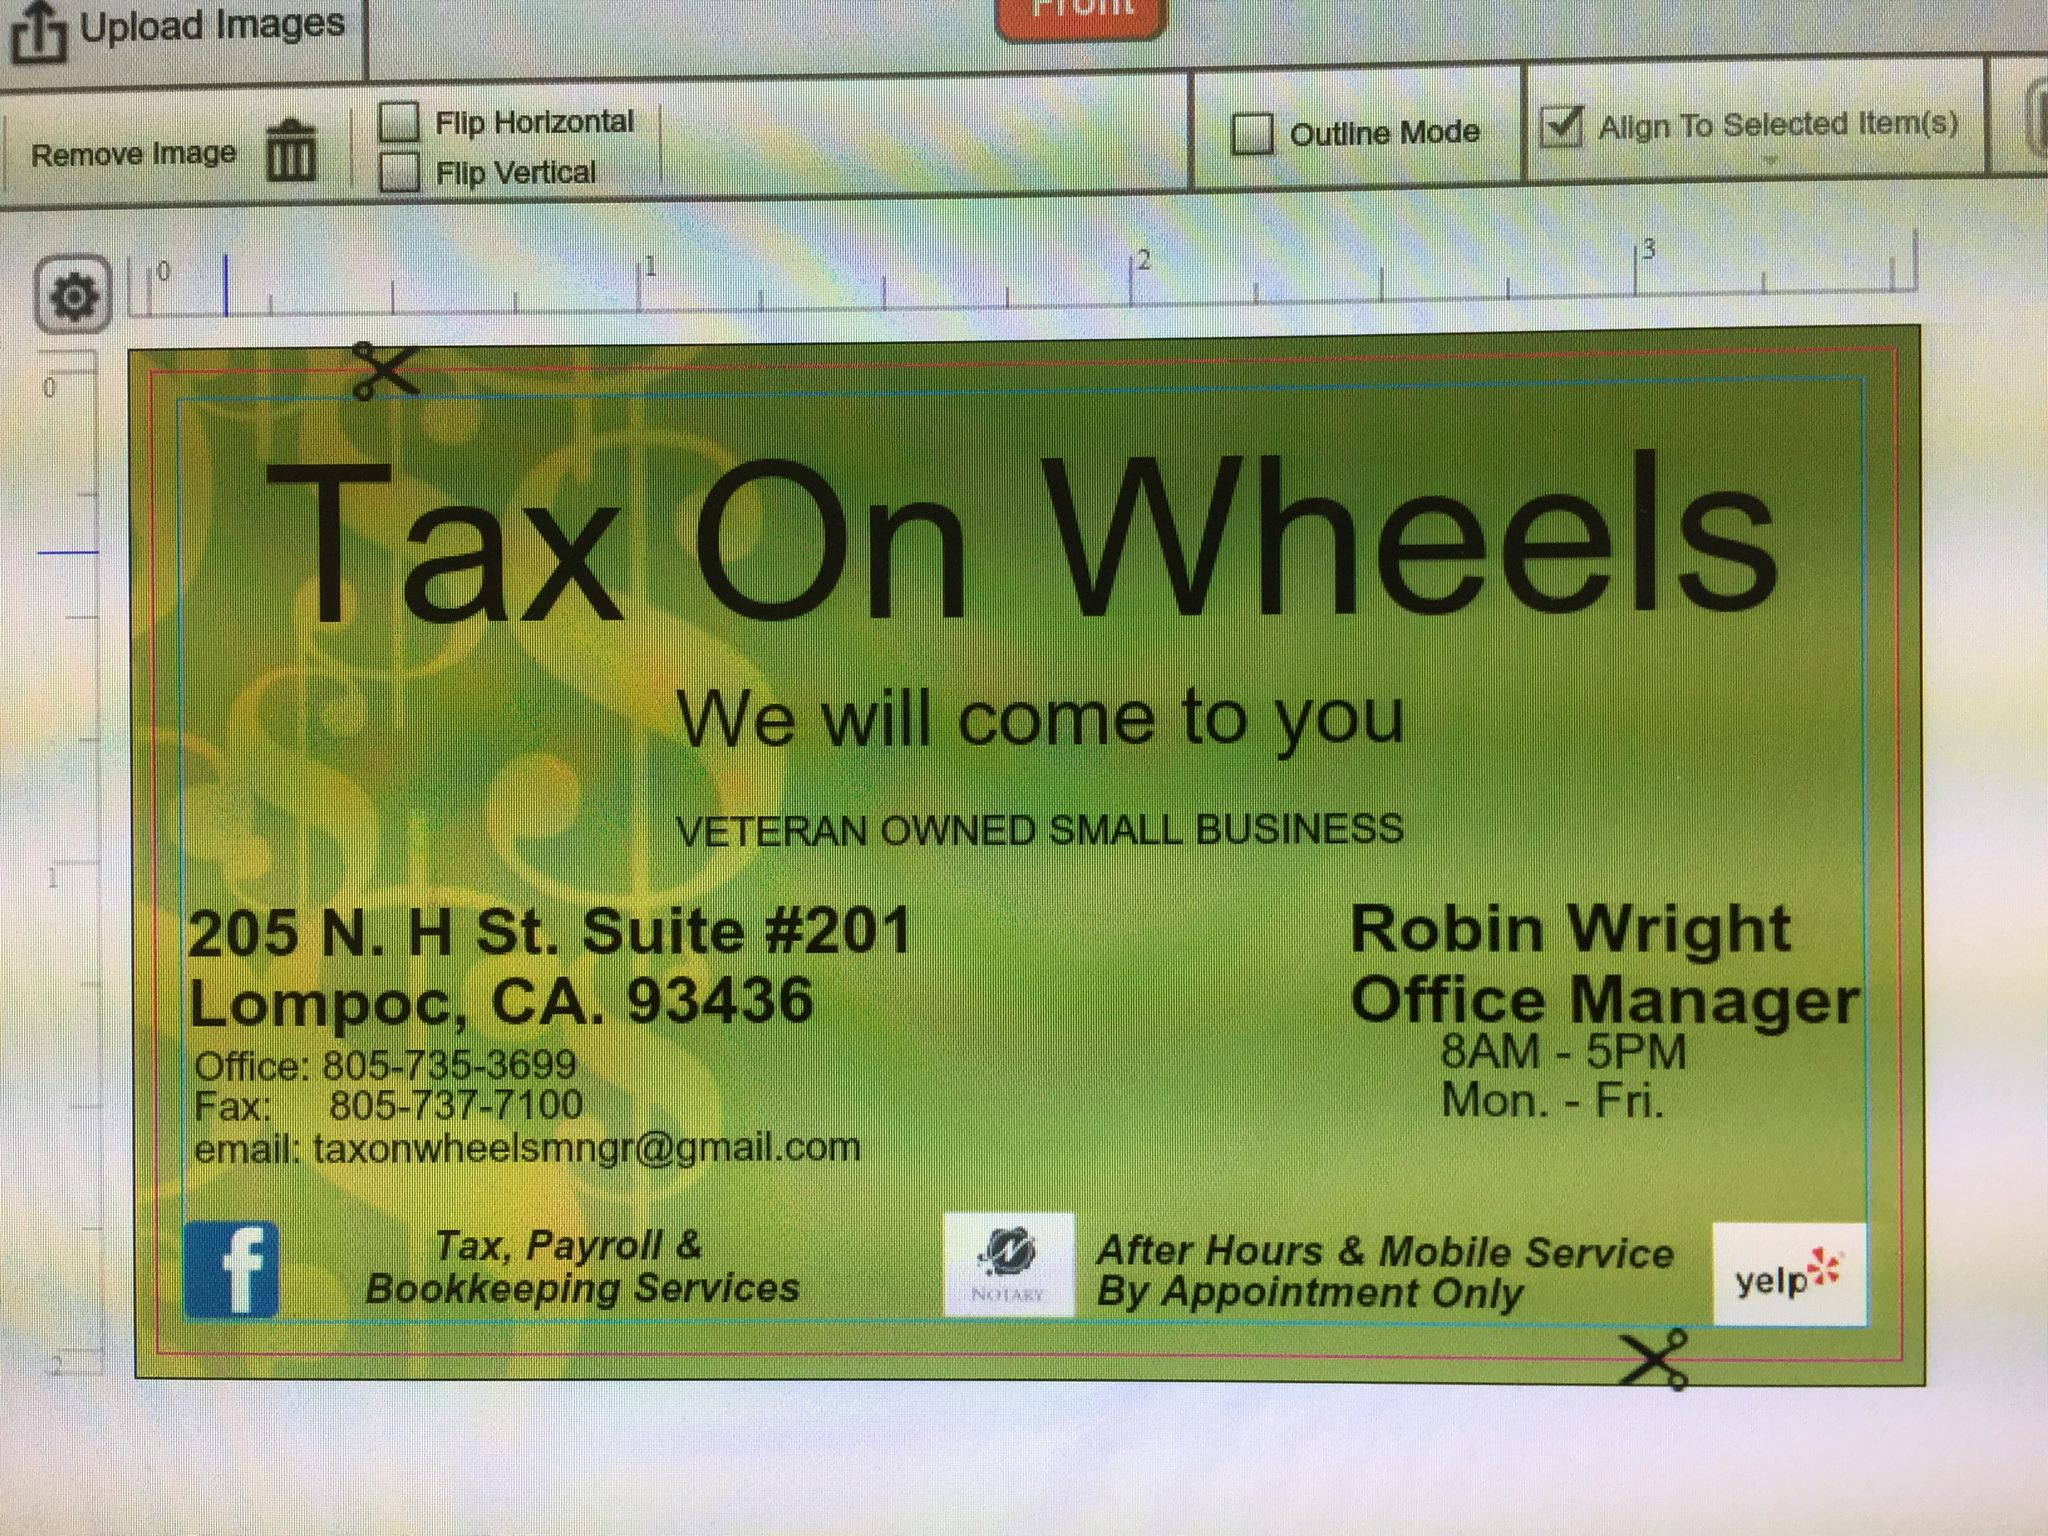 Tax On Wheels logo